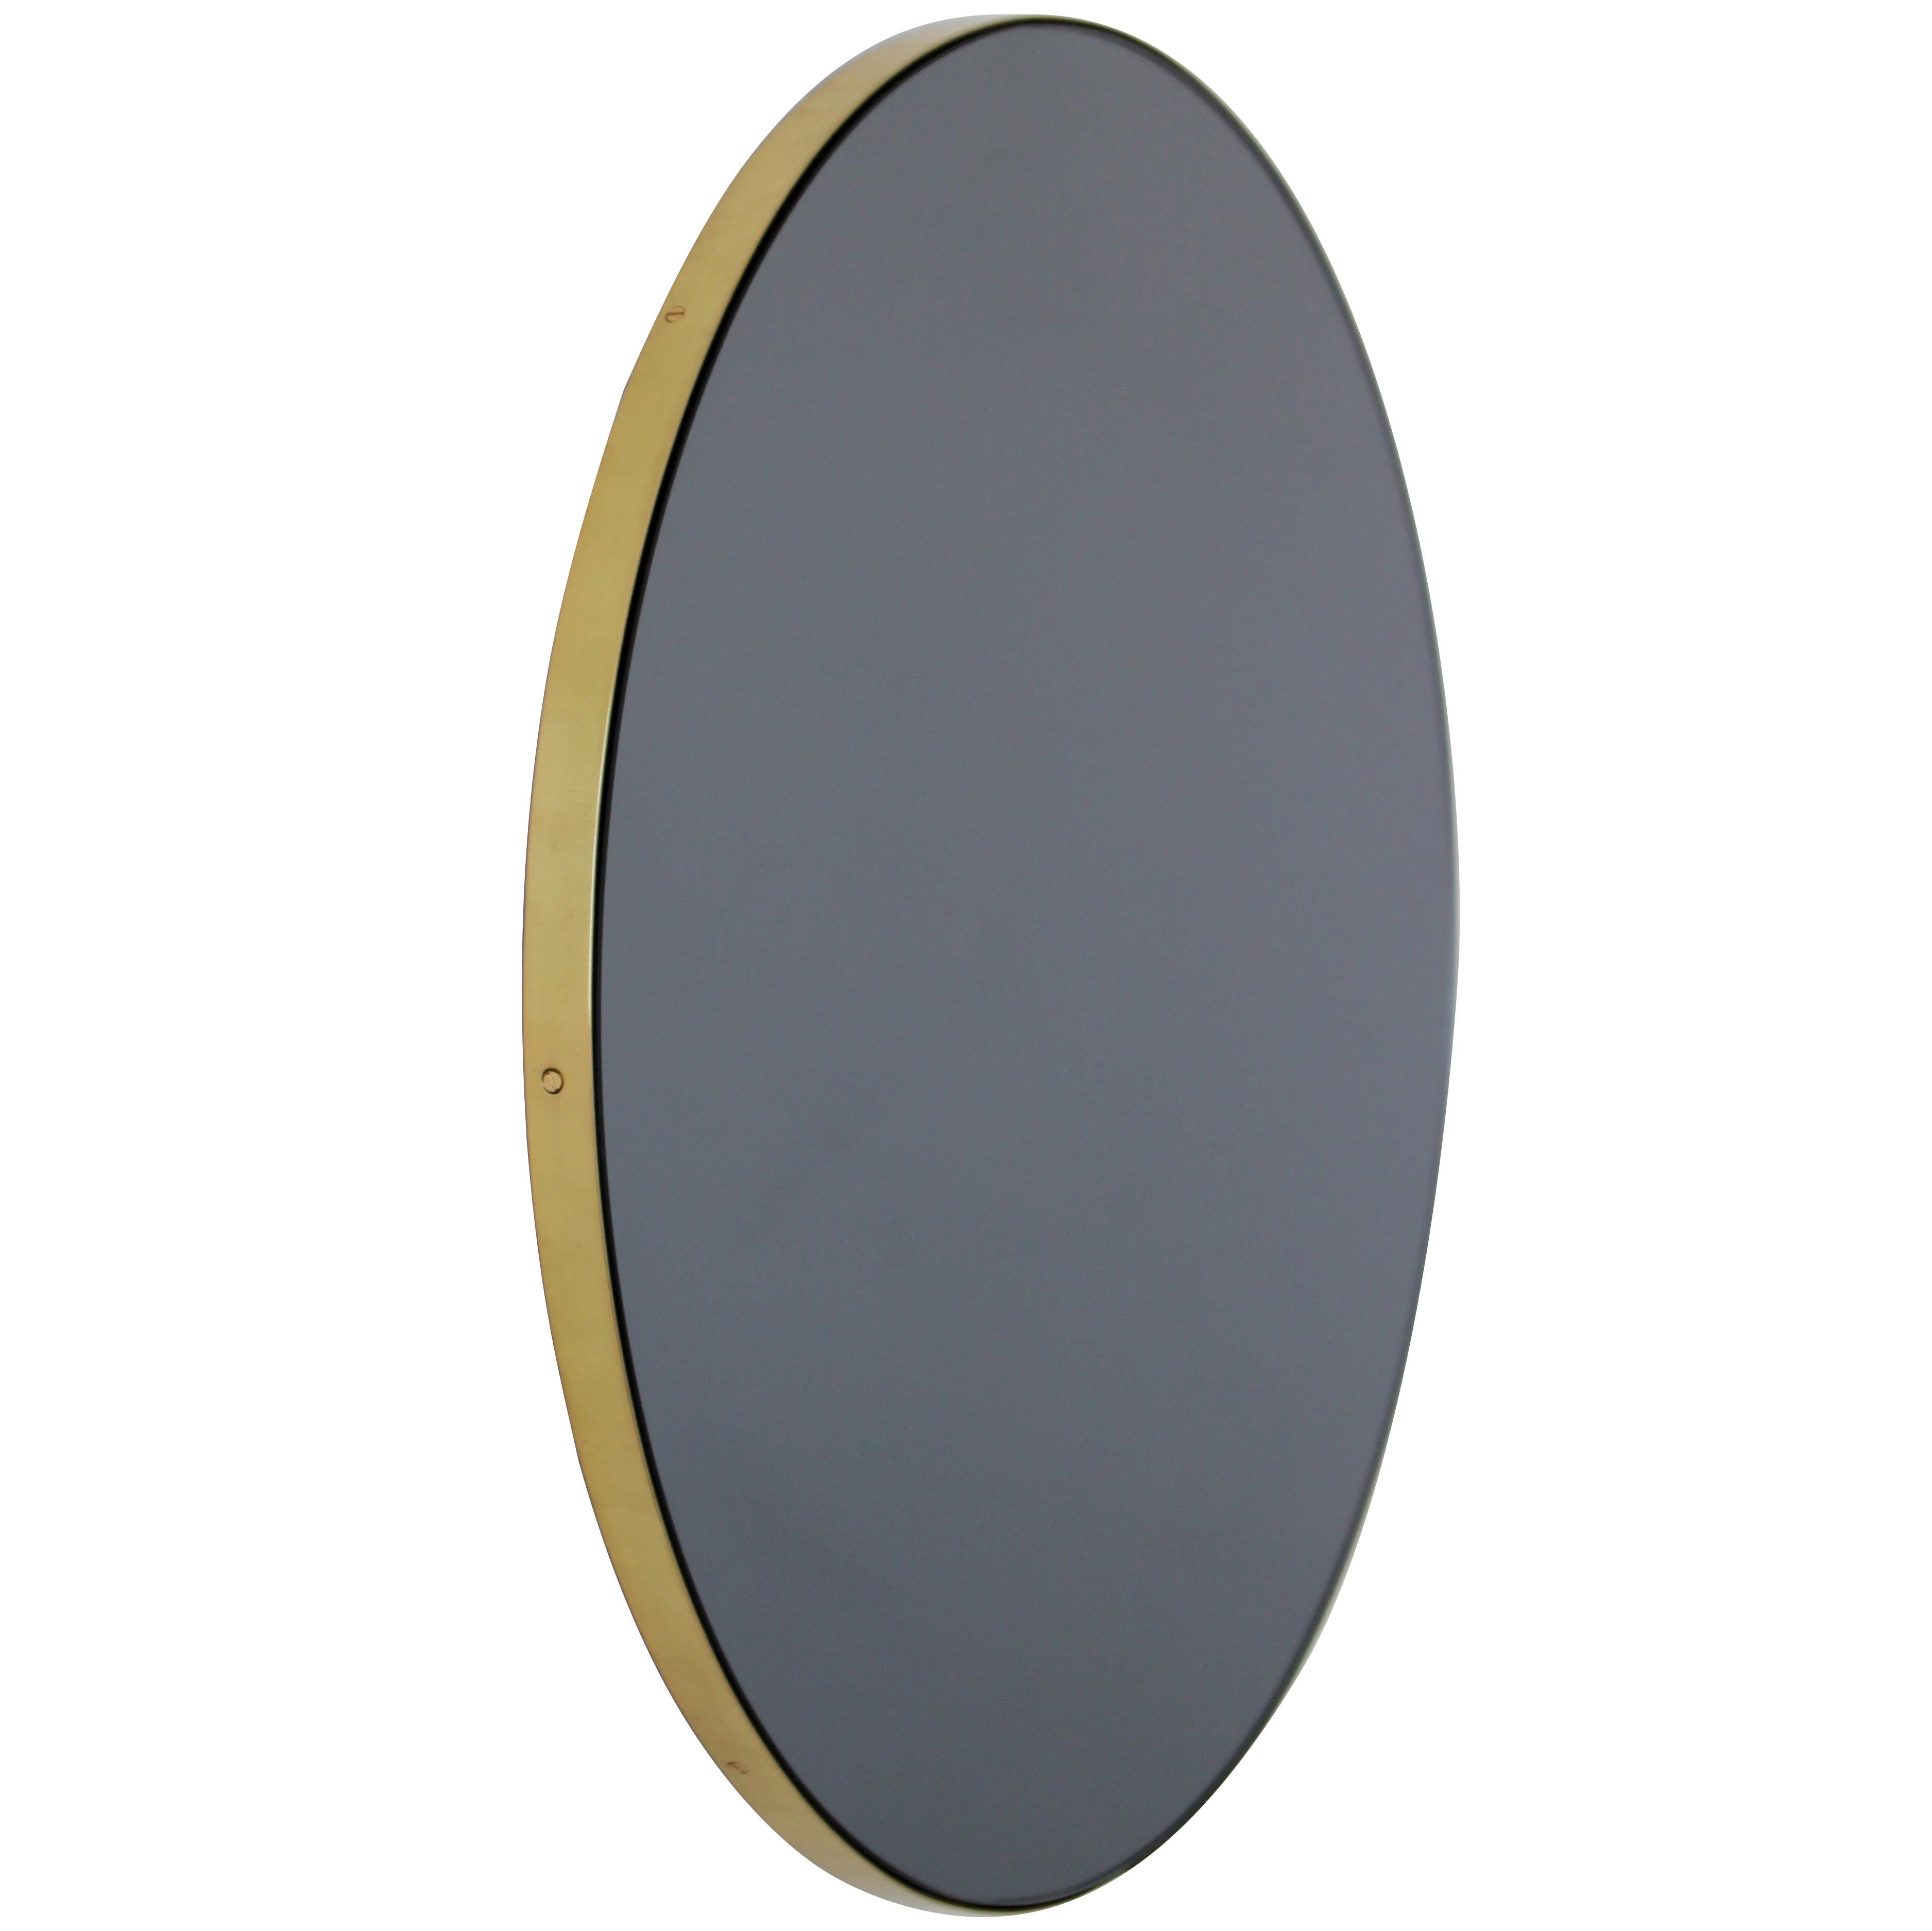 Orbis™ Black Tinted Round Contemporary Mirror with Brass Frame - Large